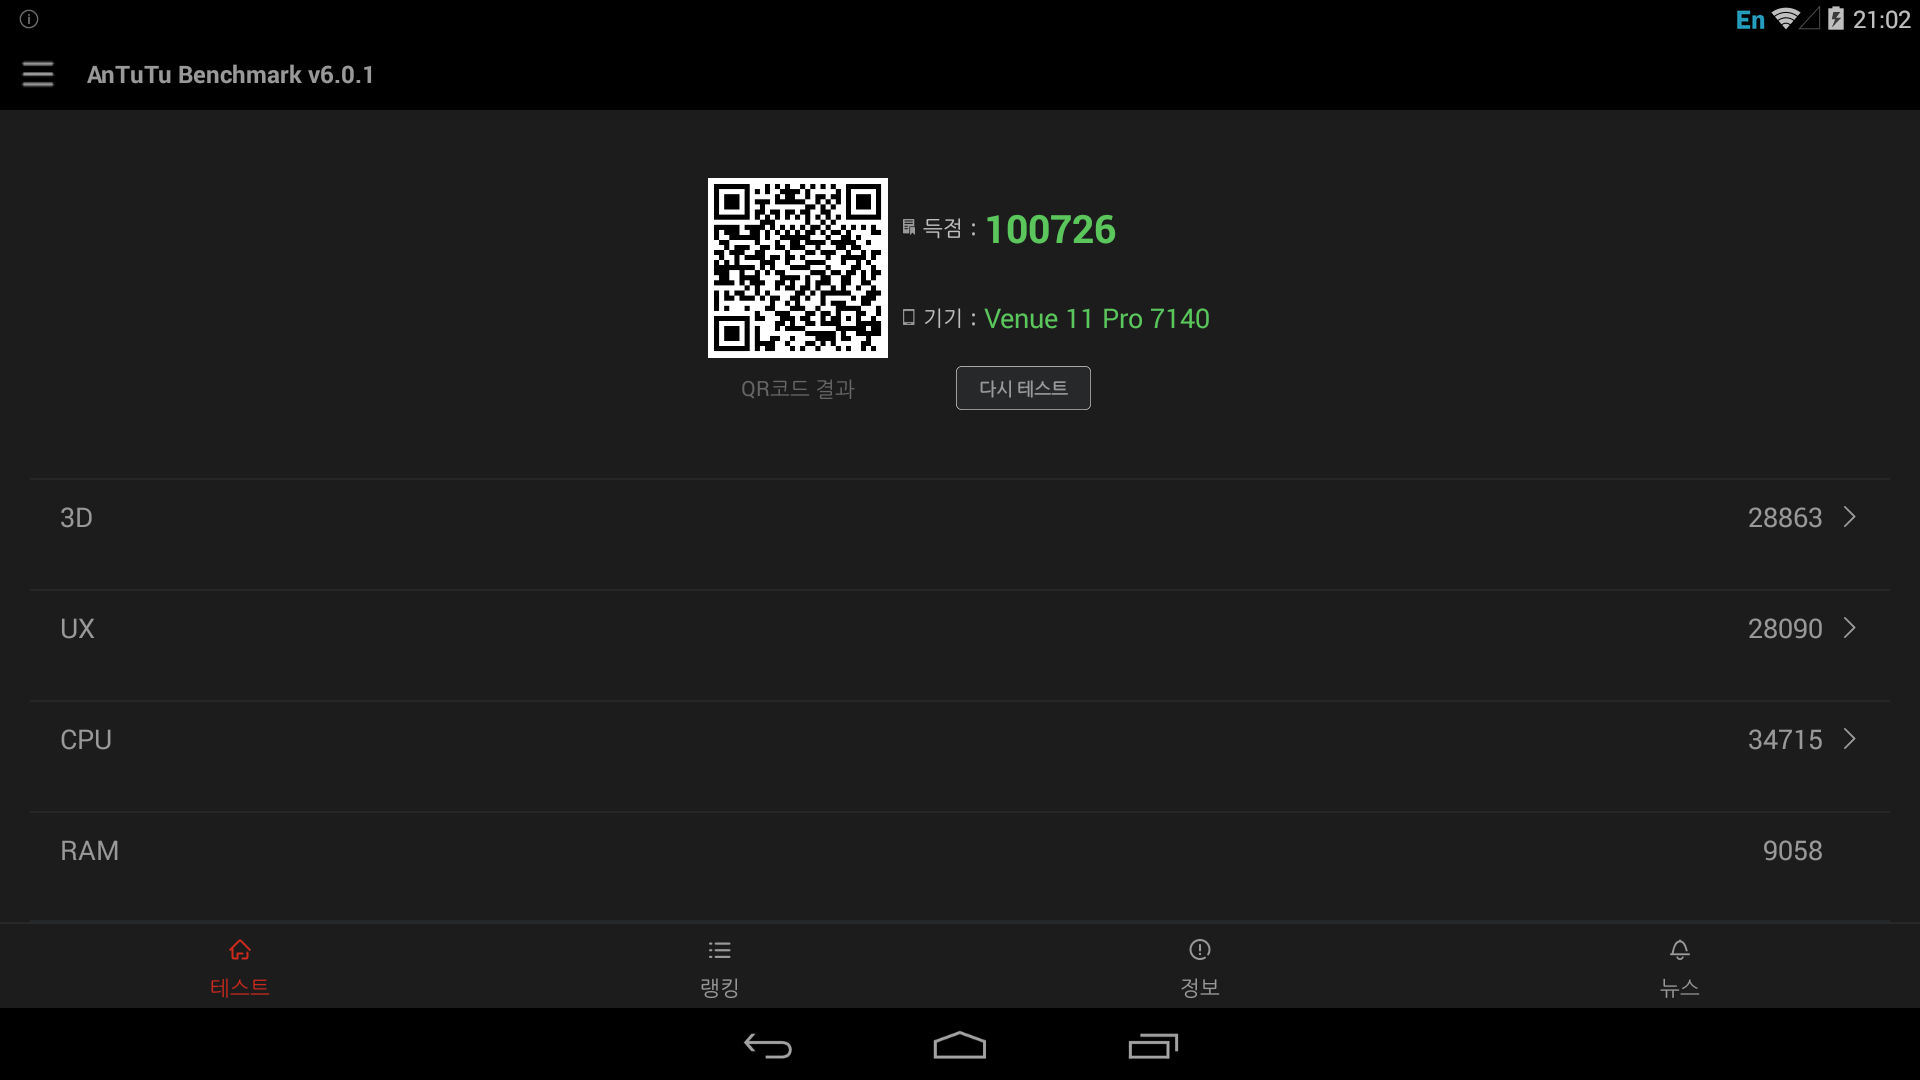 Antutu result of Android-x86 on DELL Venue 7140 Pro